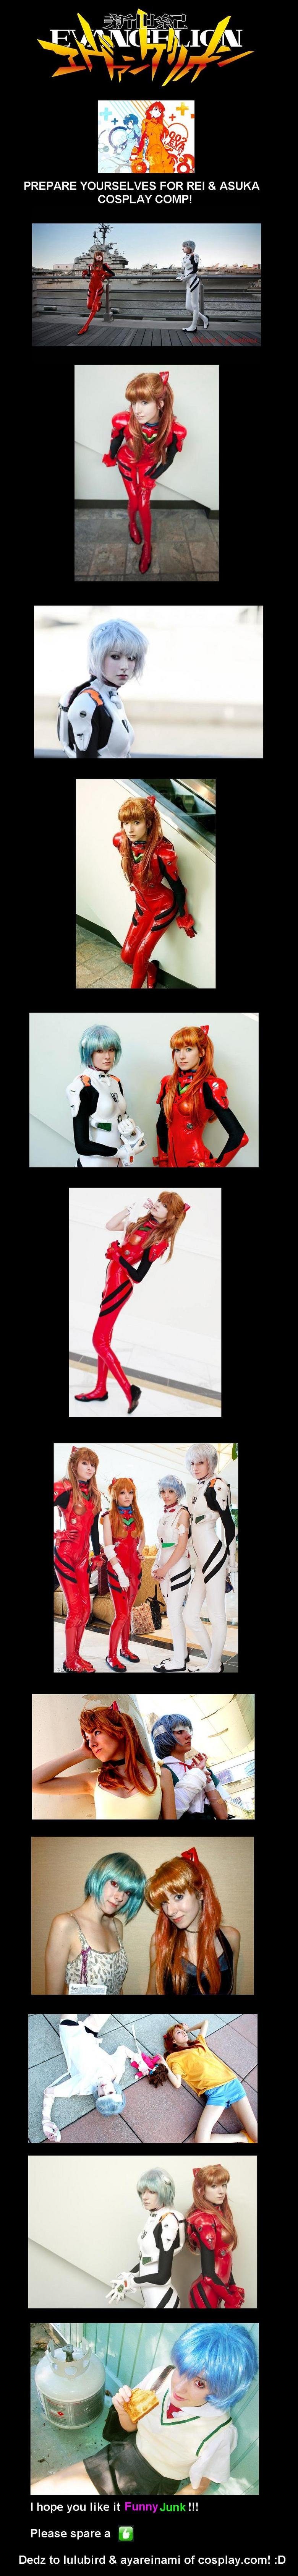 Evangelion Cosplay COMP. Cosplay.com Profiles: lulubird: ayareinami: Youtube Video of ayareinami in her sister's plug suit: . PREPARE YOURSELVES FOR REI & ASUKA